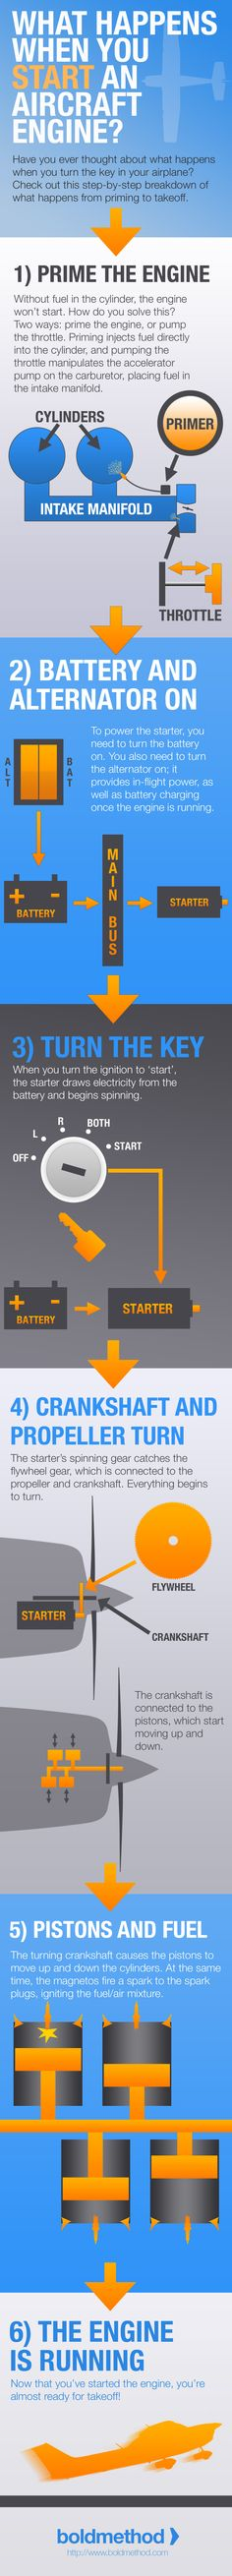 What Happens When You Start An Aircraft Engine? +Infographic